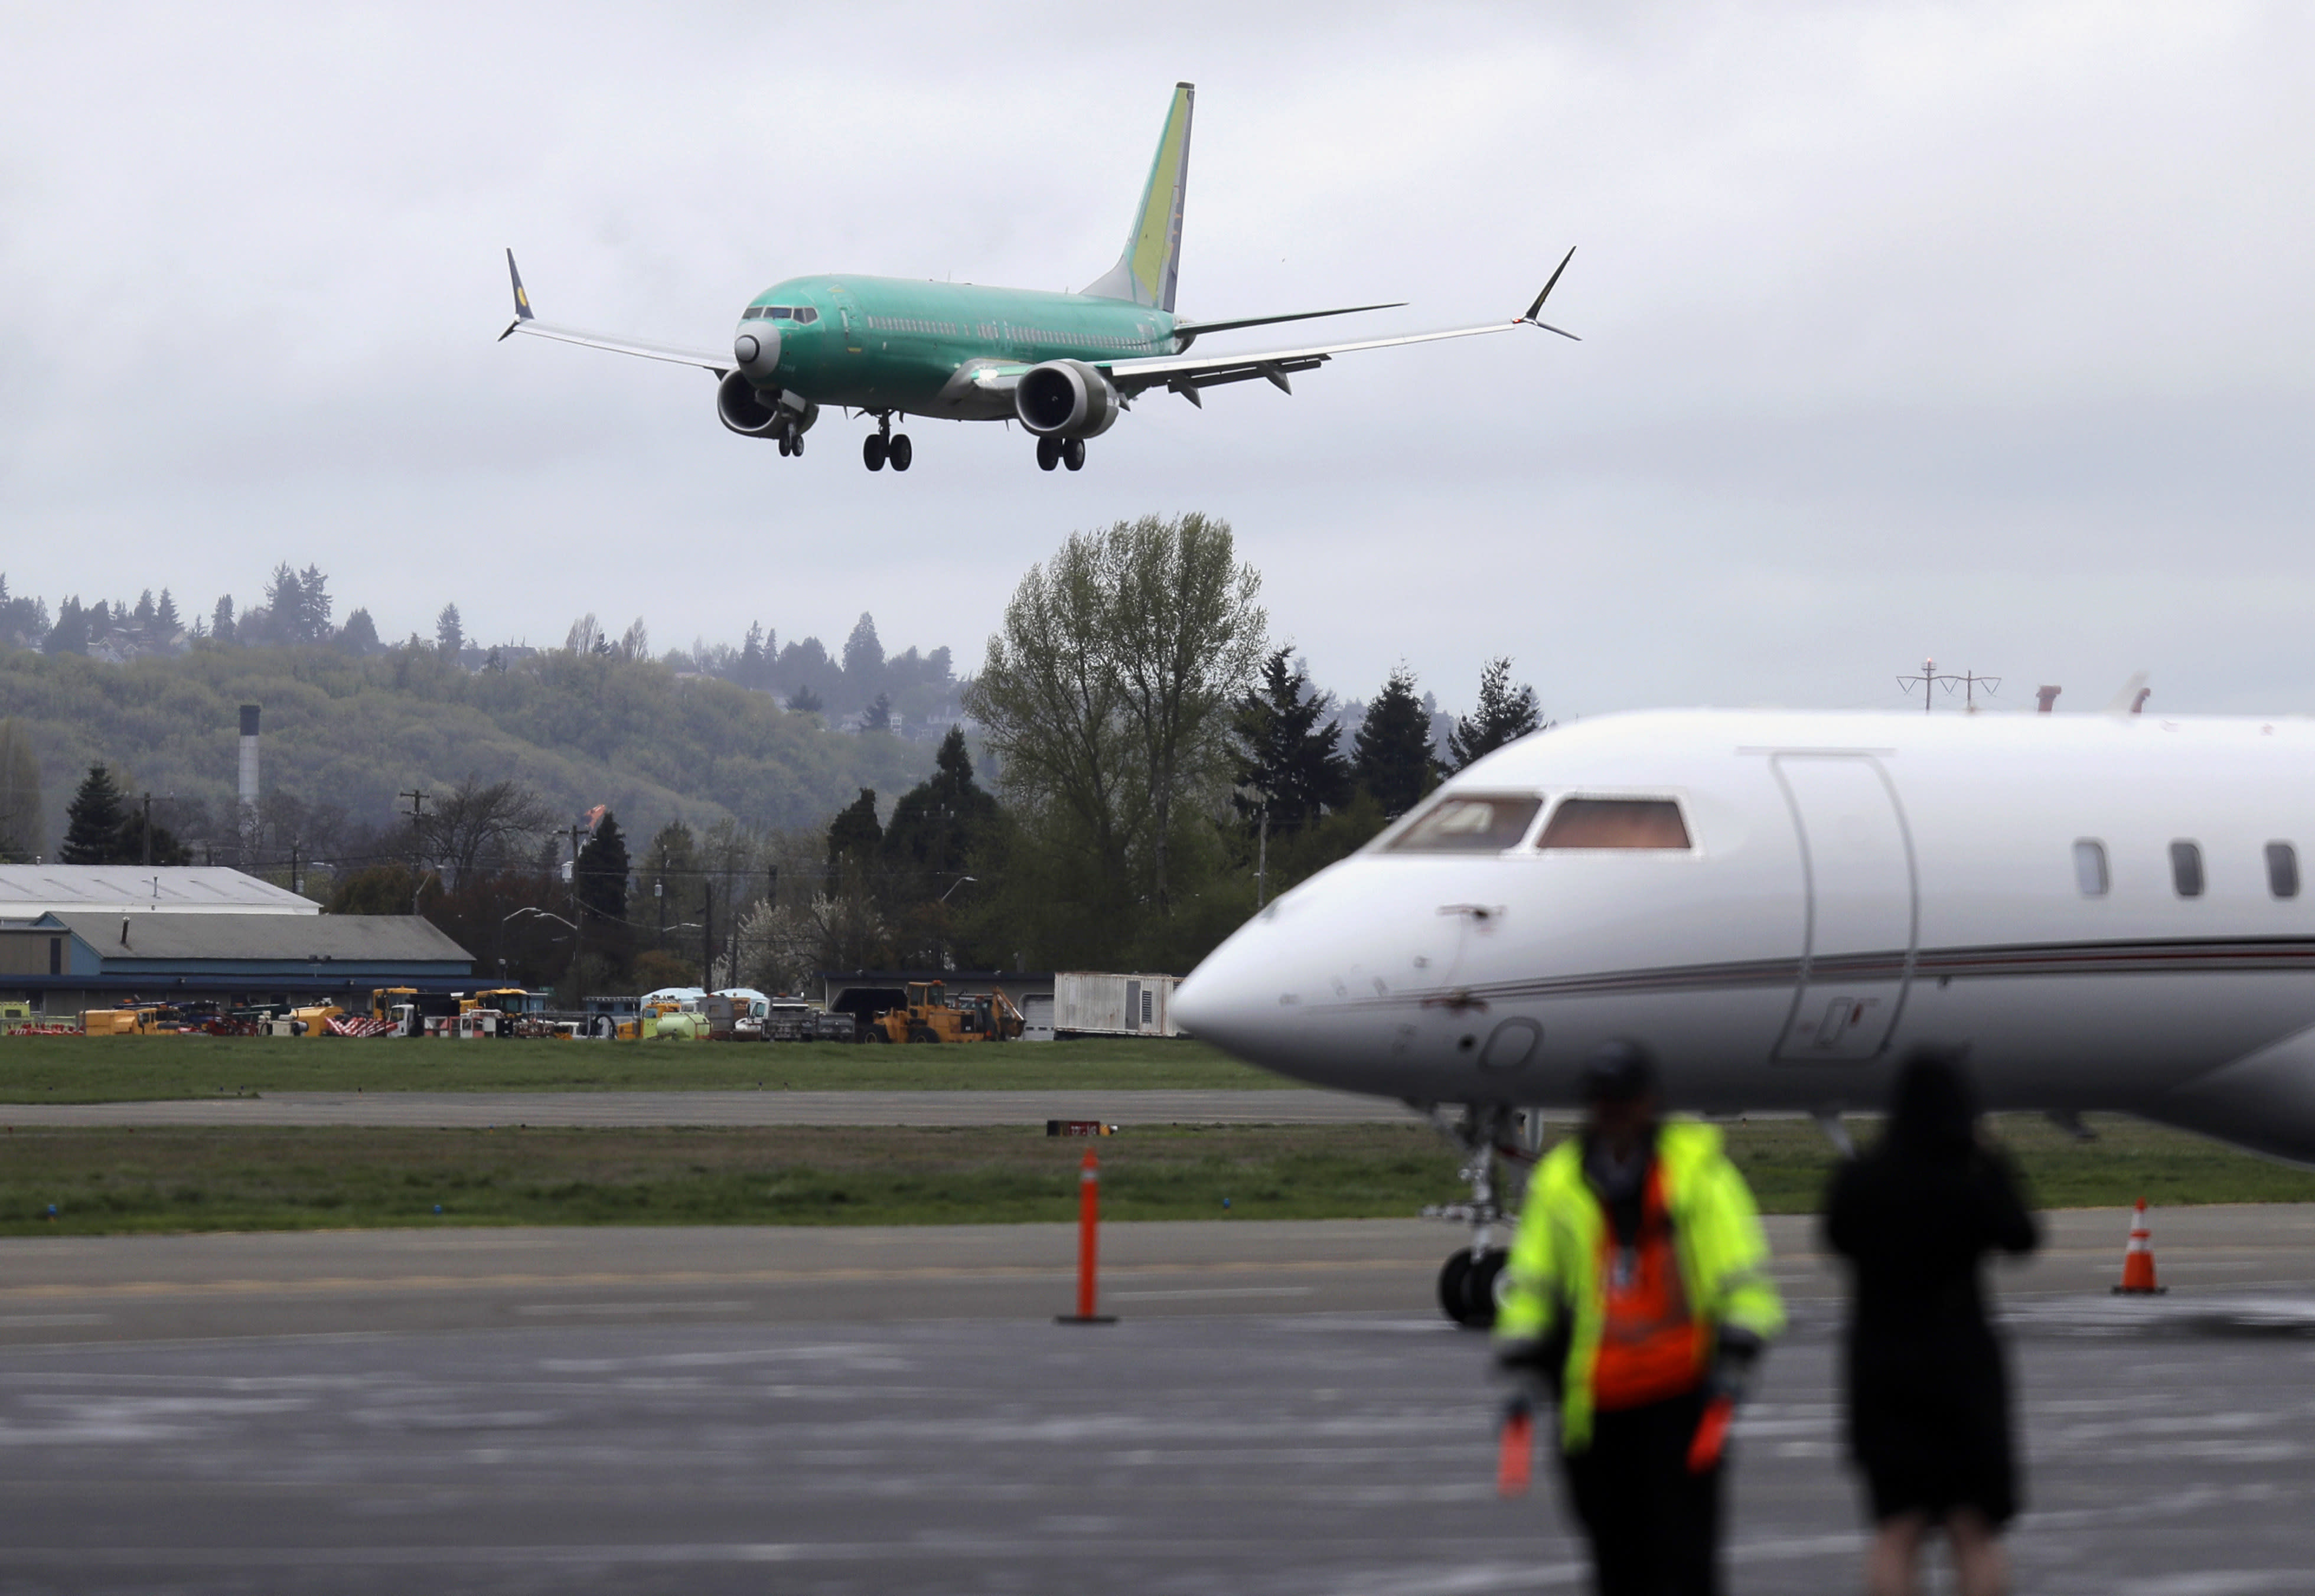 Boeing did not adequately consider pilot reactions in 737 MAX -NTSB